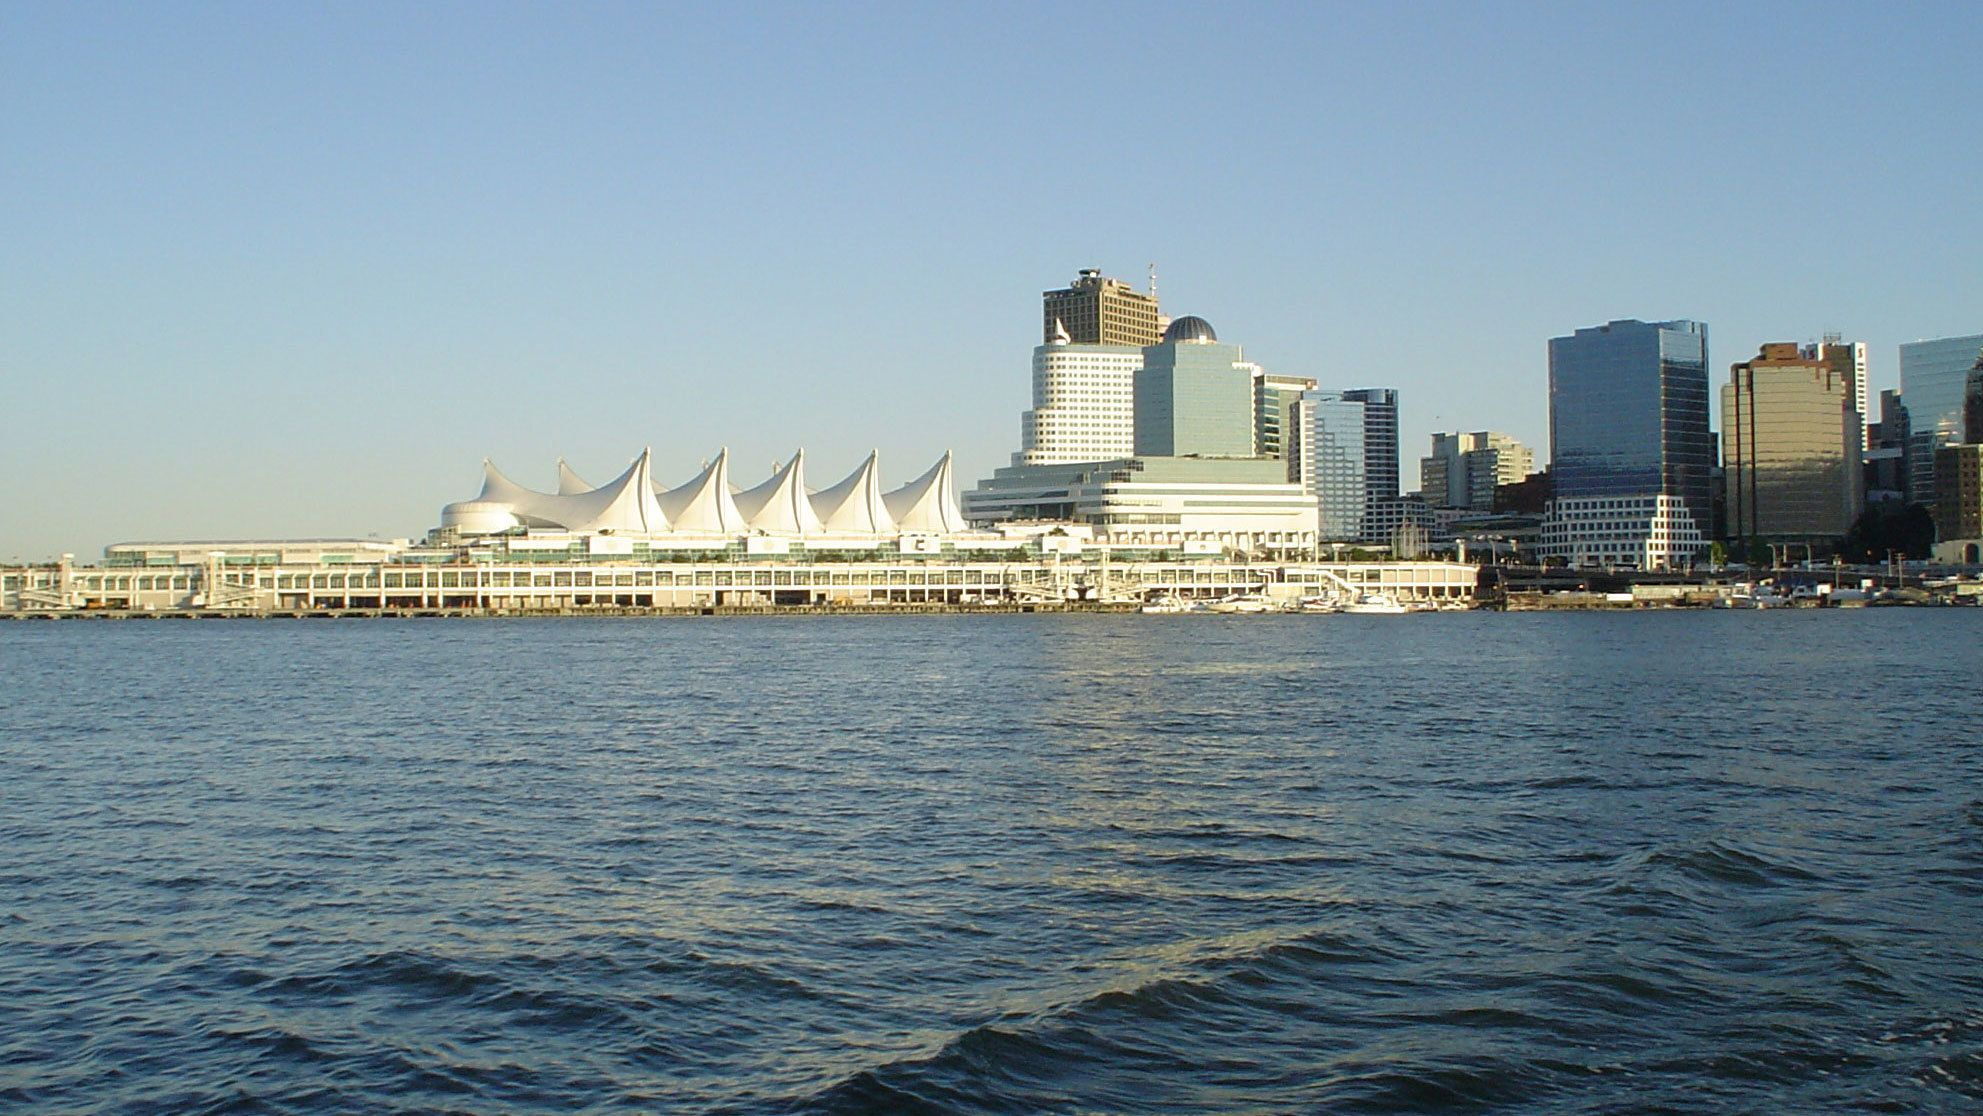 View of the city from the water in Vancouver